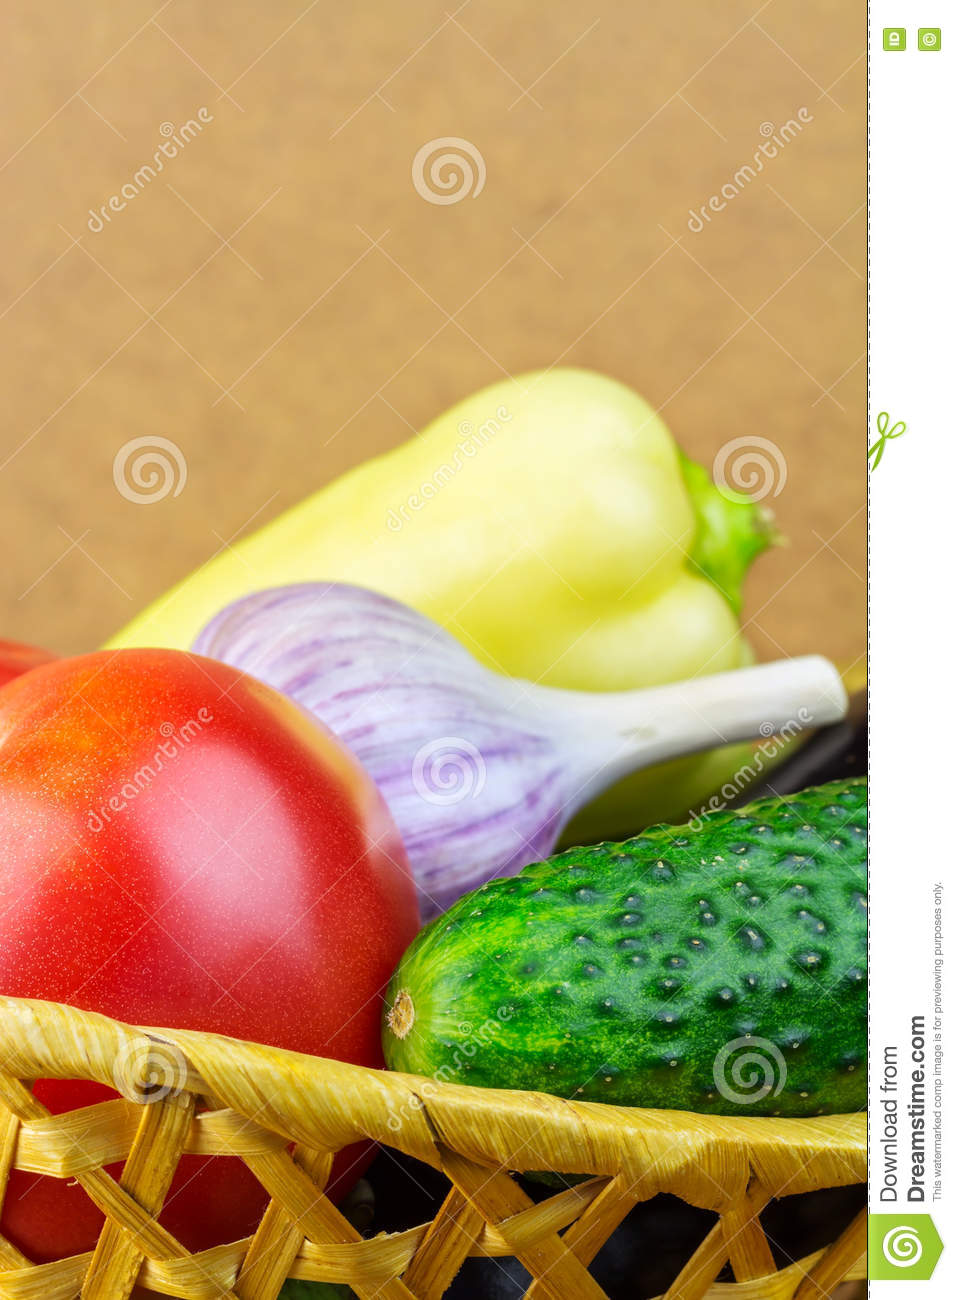 group of backyard vegetables in wicker basket on wooden background